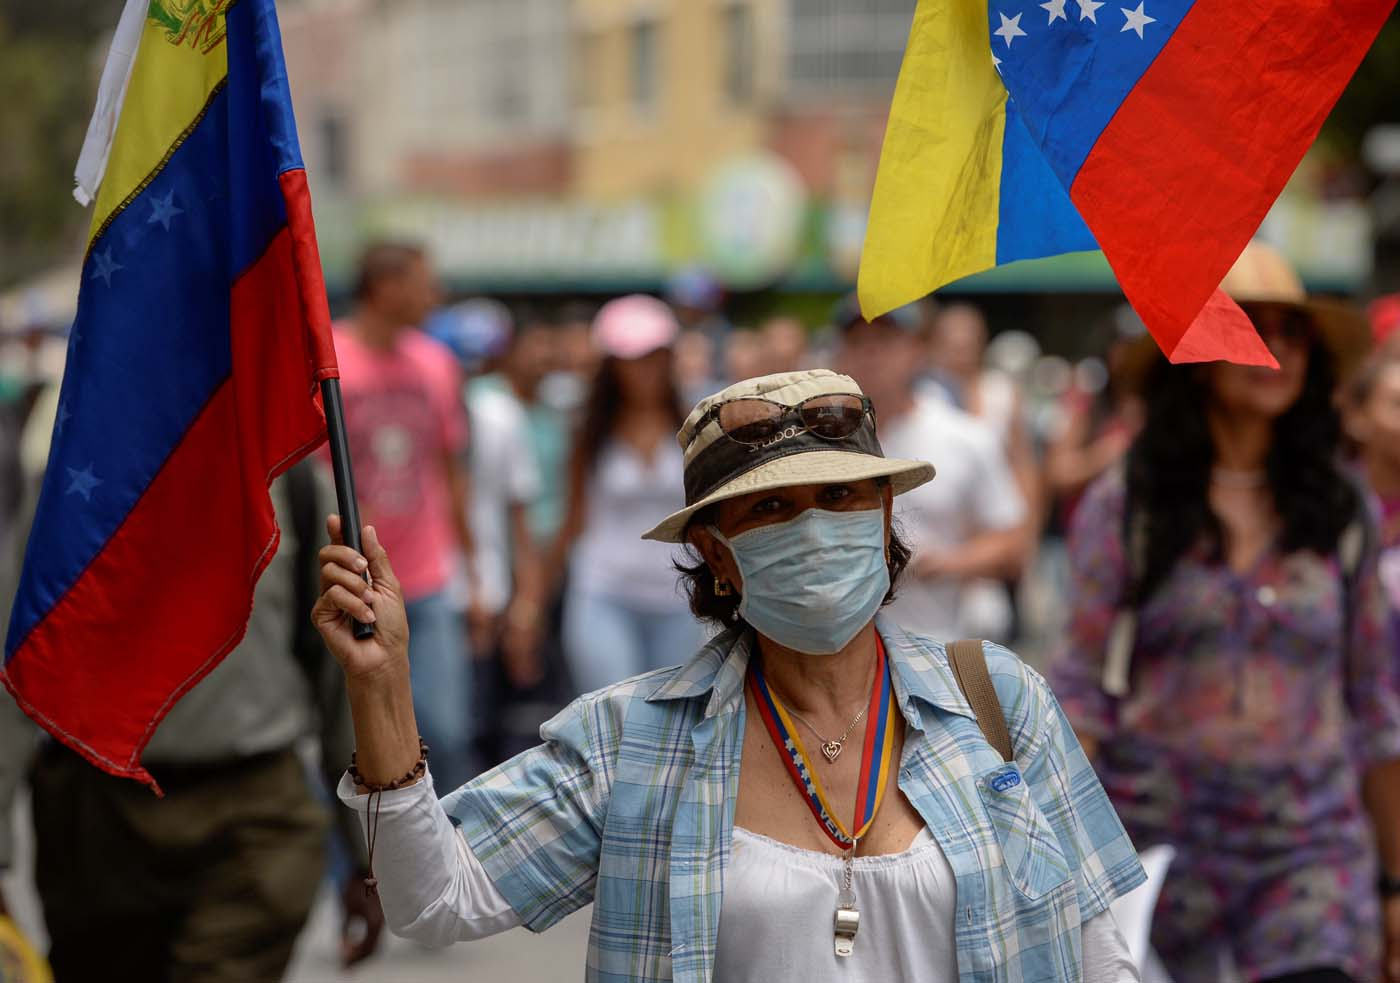 A woman demonstrates during a march against Venezuelan President Nicolas Maduro, in Caracas on April 20, 2017. Venezuelan riot police fired tear gas Thursday at groups of protesters seeking to oust President Nicolas Maduro, who have vowed new mass marches after a day of deadly unrest. Police in western Caracas broke up scores of opposition protesters trying to join a larger march, though there was no immediate repeat of Wednesday's violent clashes, which left three people dead. / AFP PHOTO / Federico PARRA